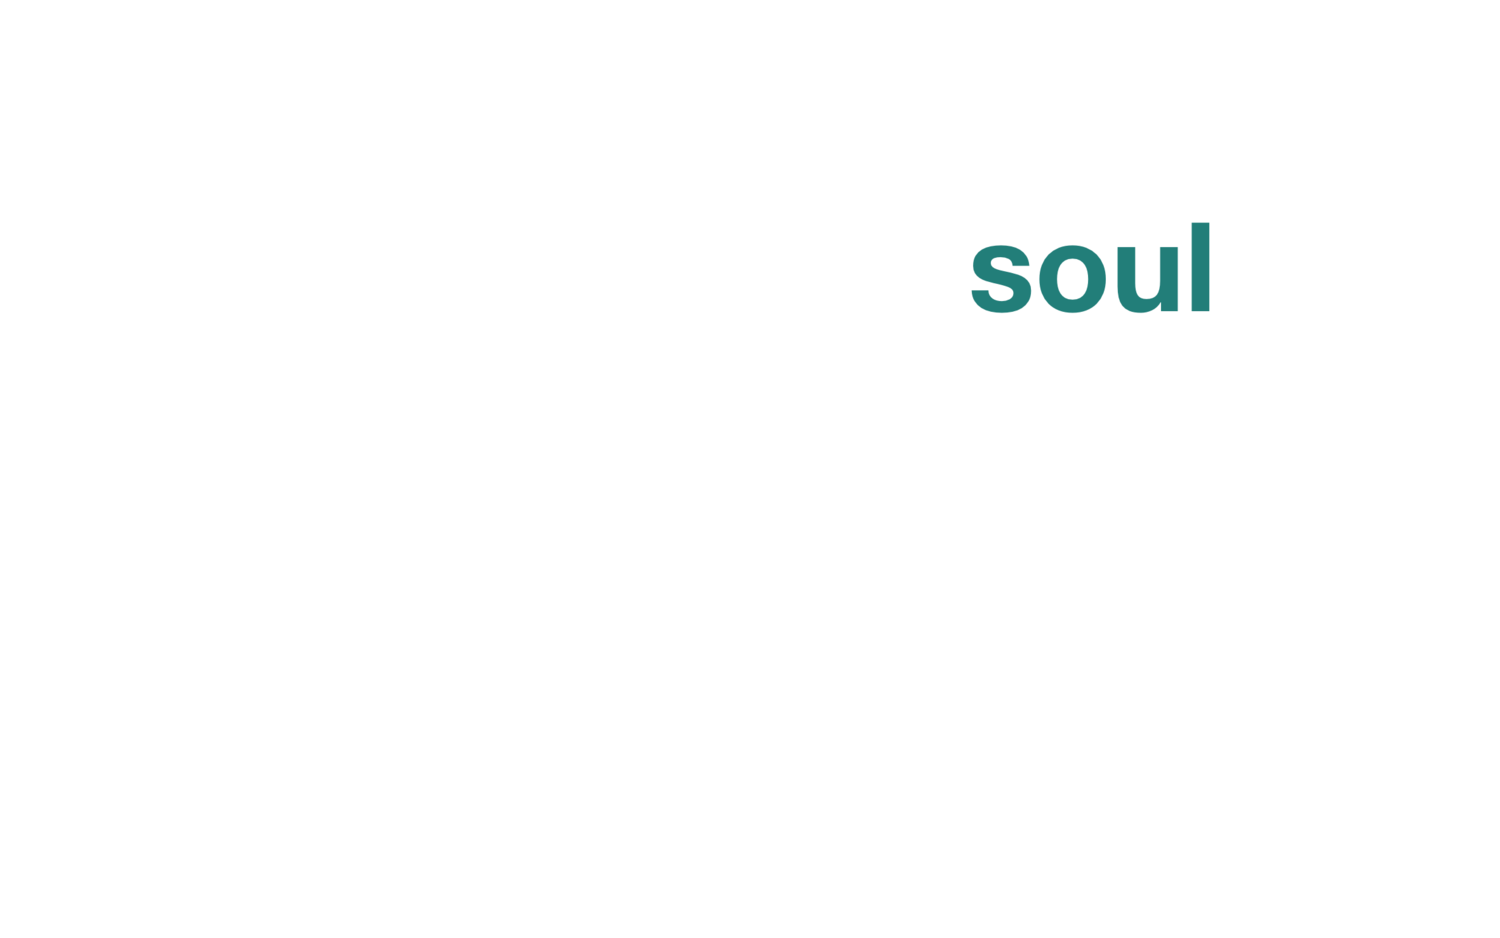 Floating Flo